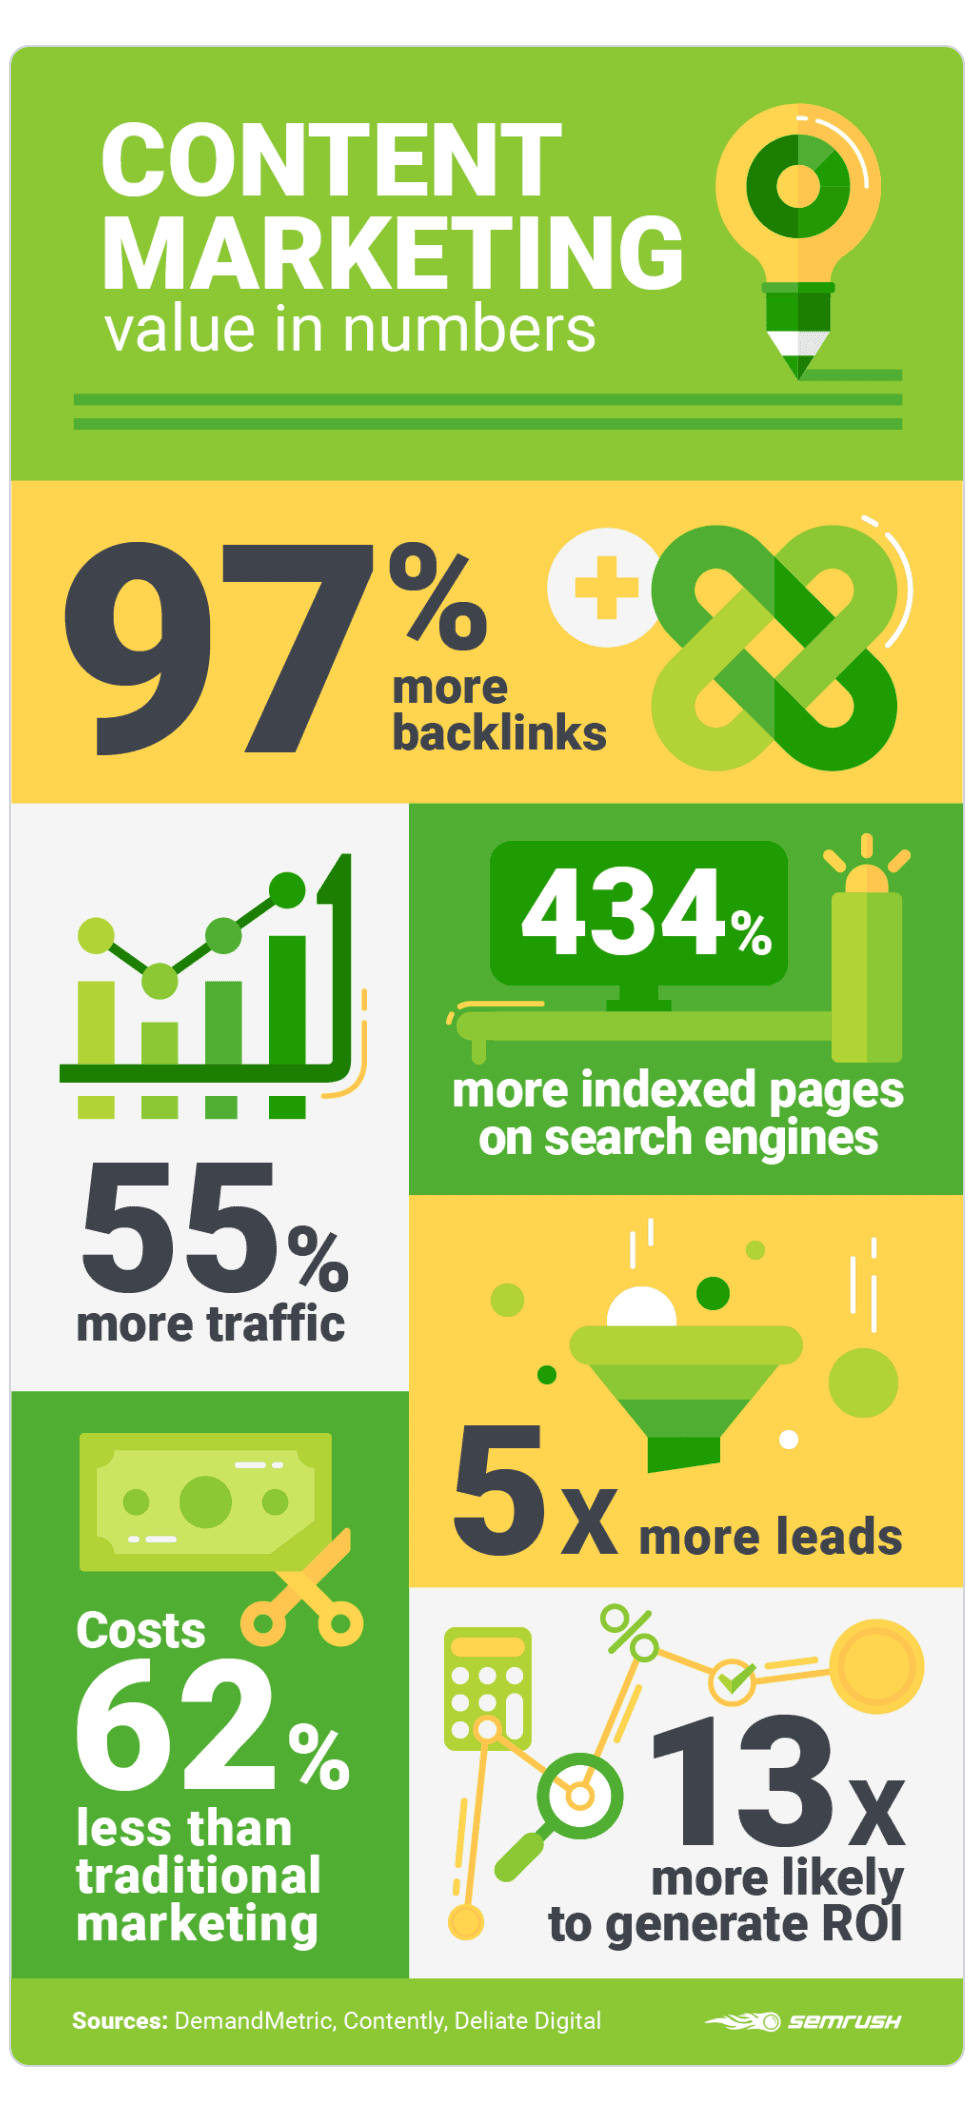 Infographic illustrating advantages of content marketing